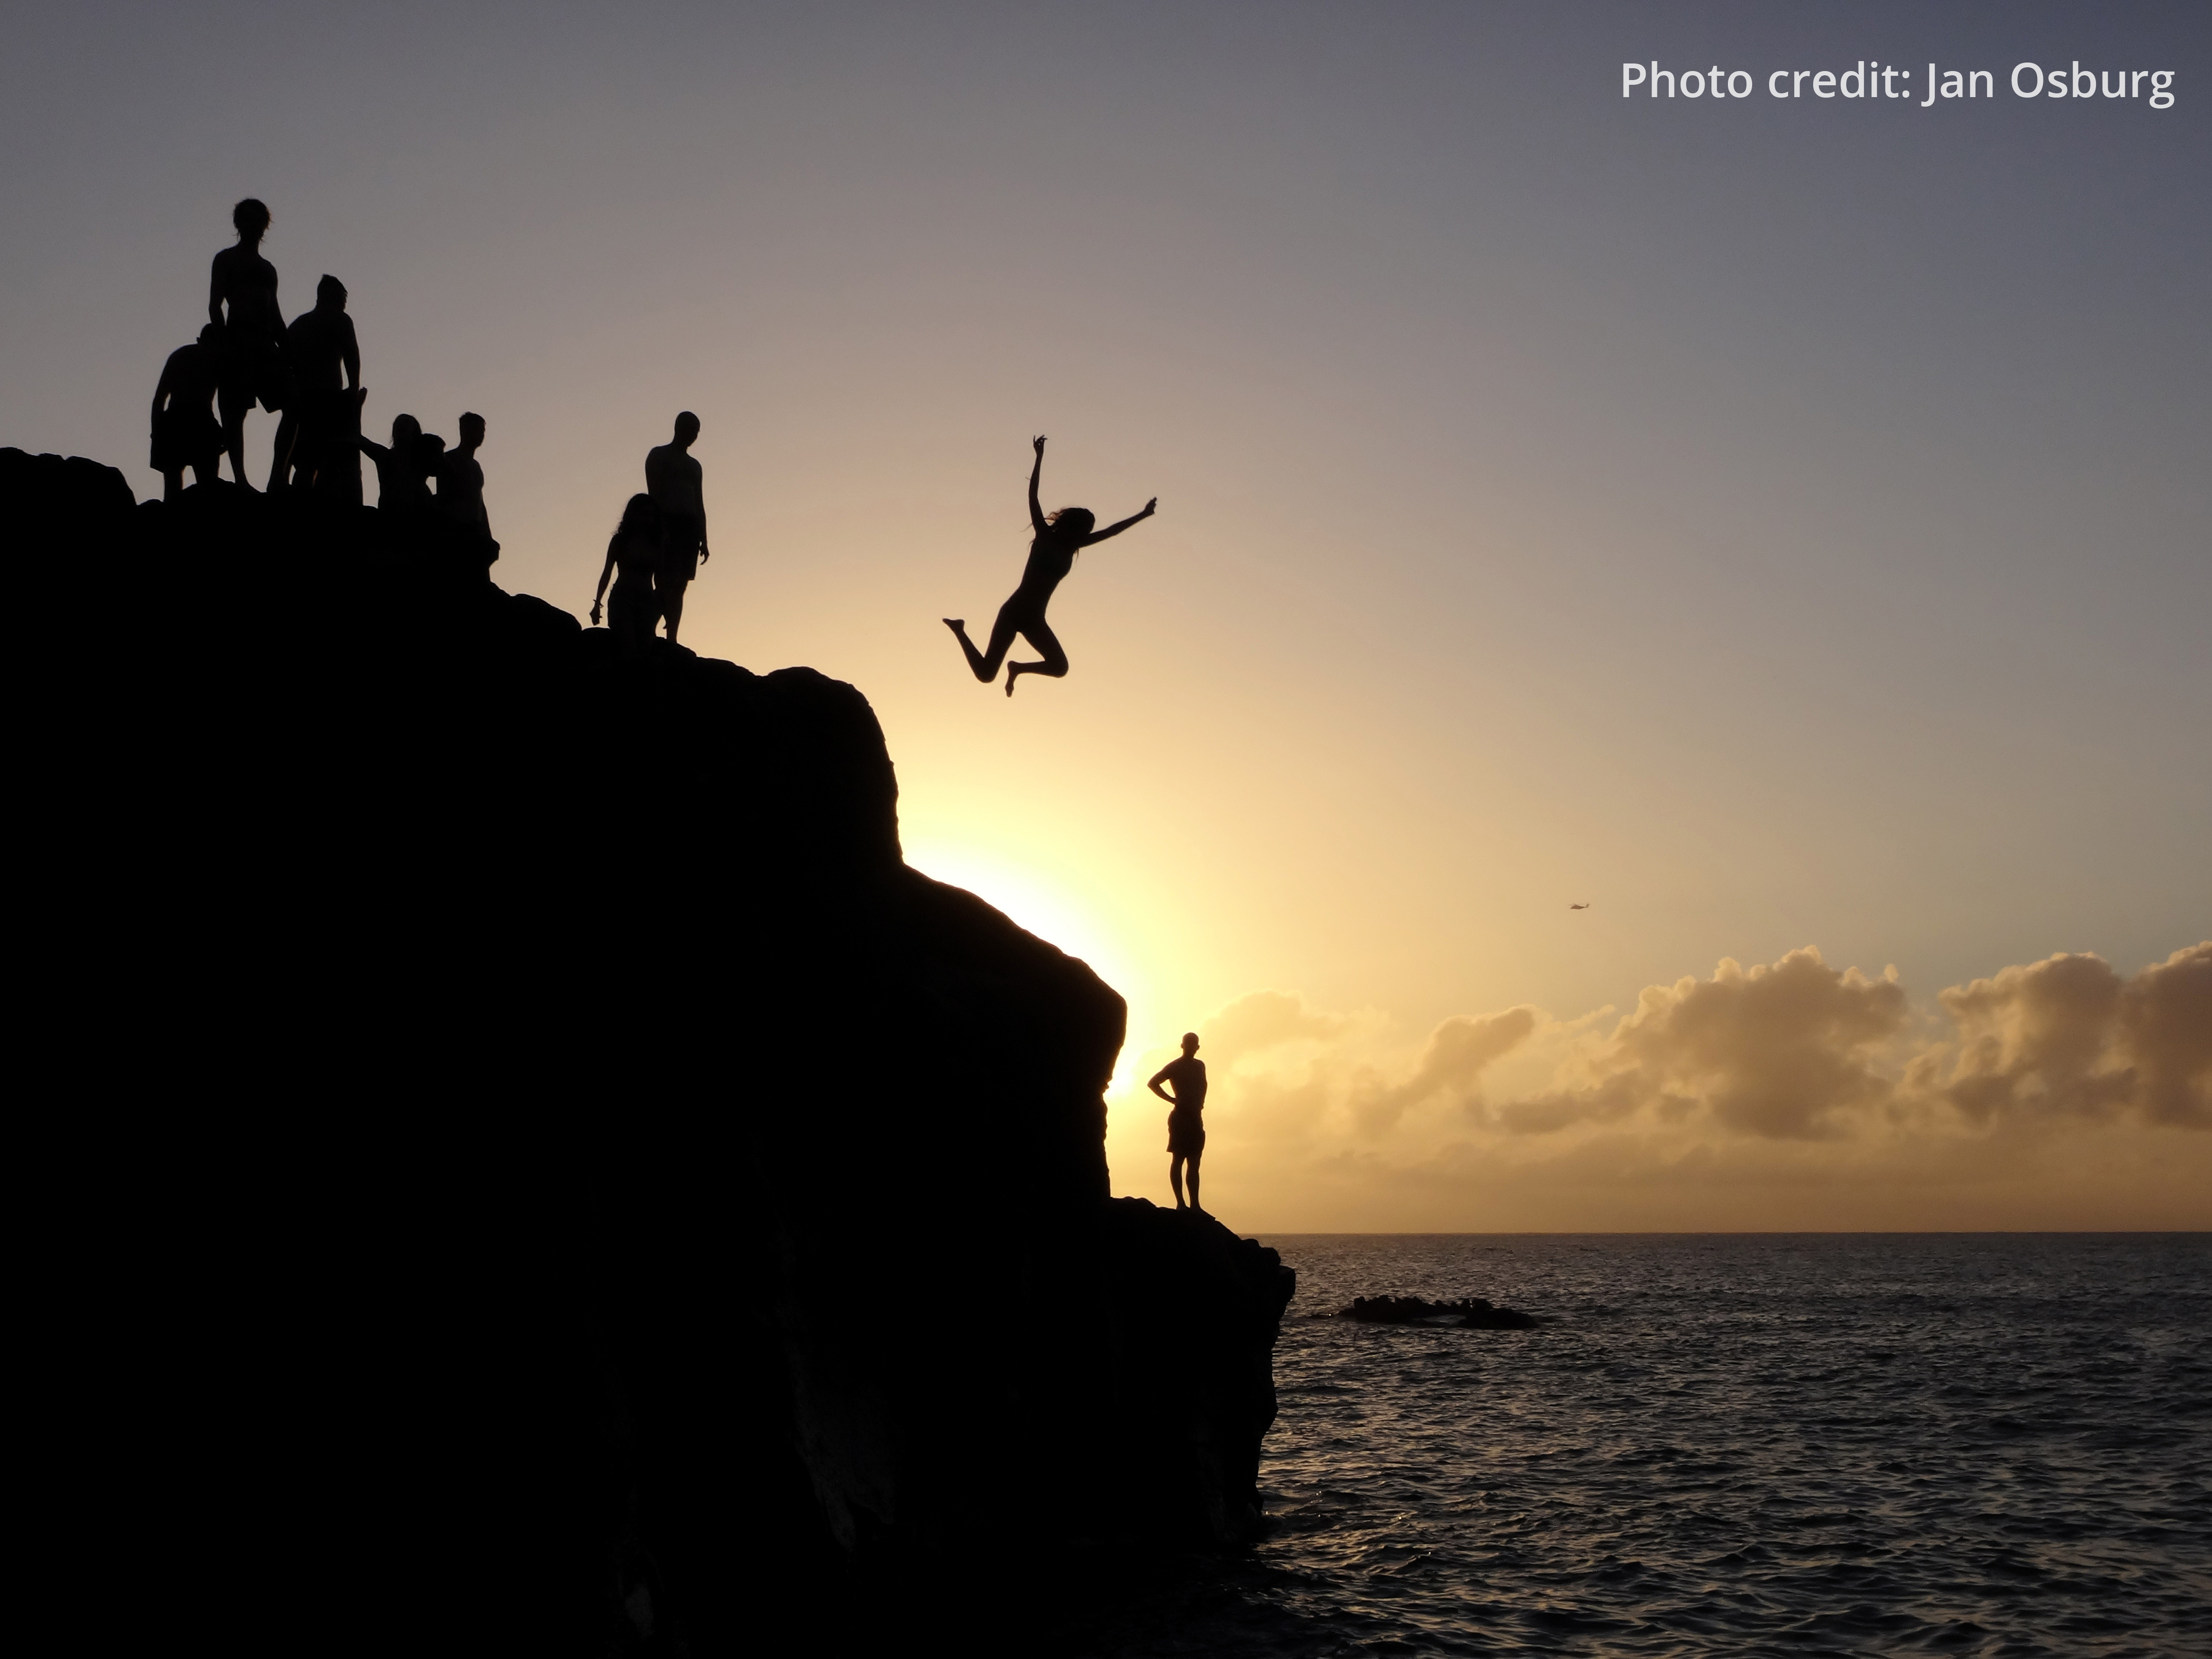 Cliff divers at sunset